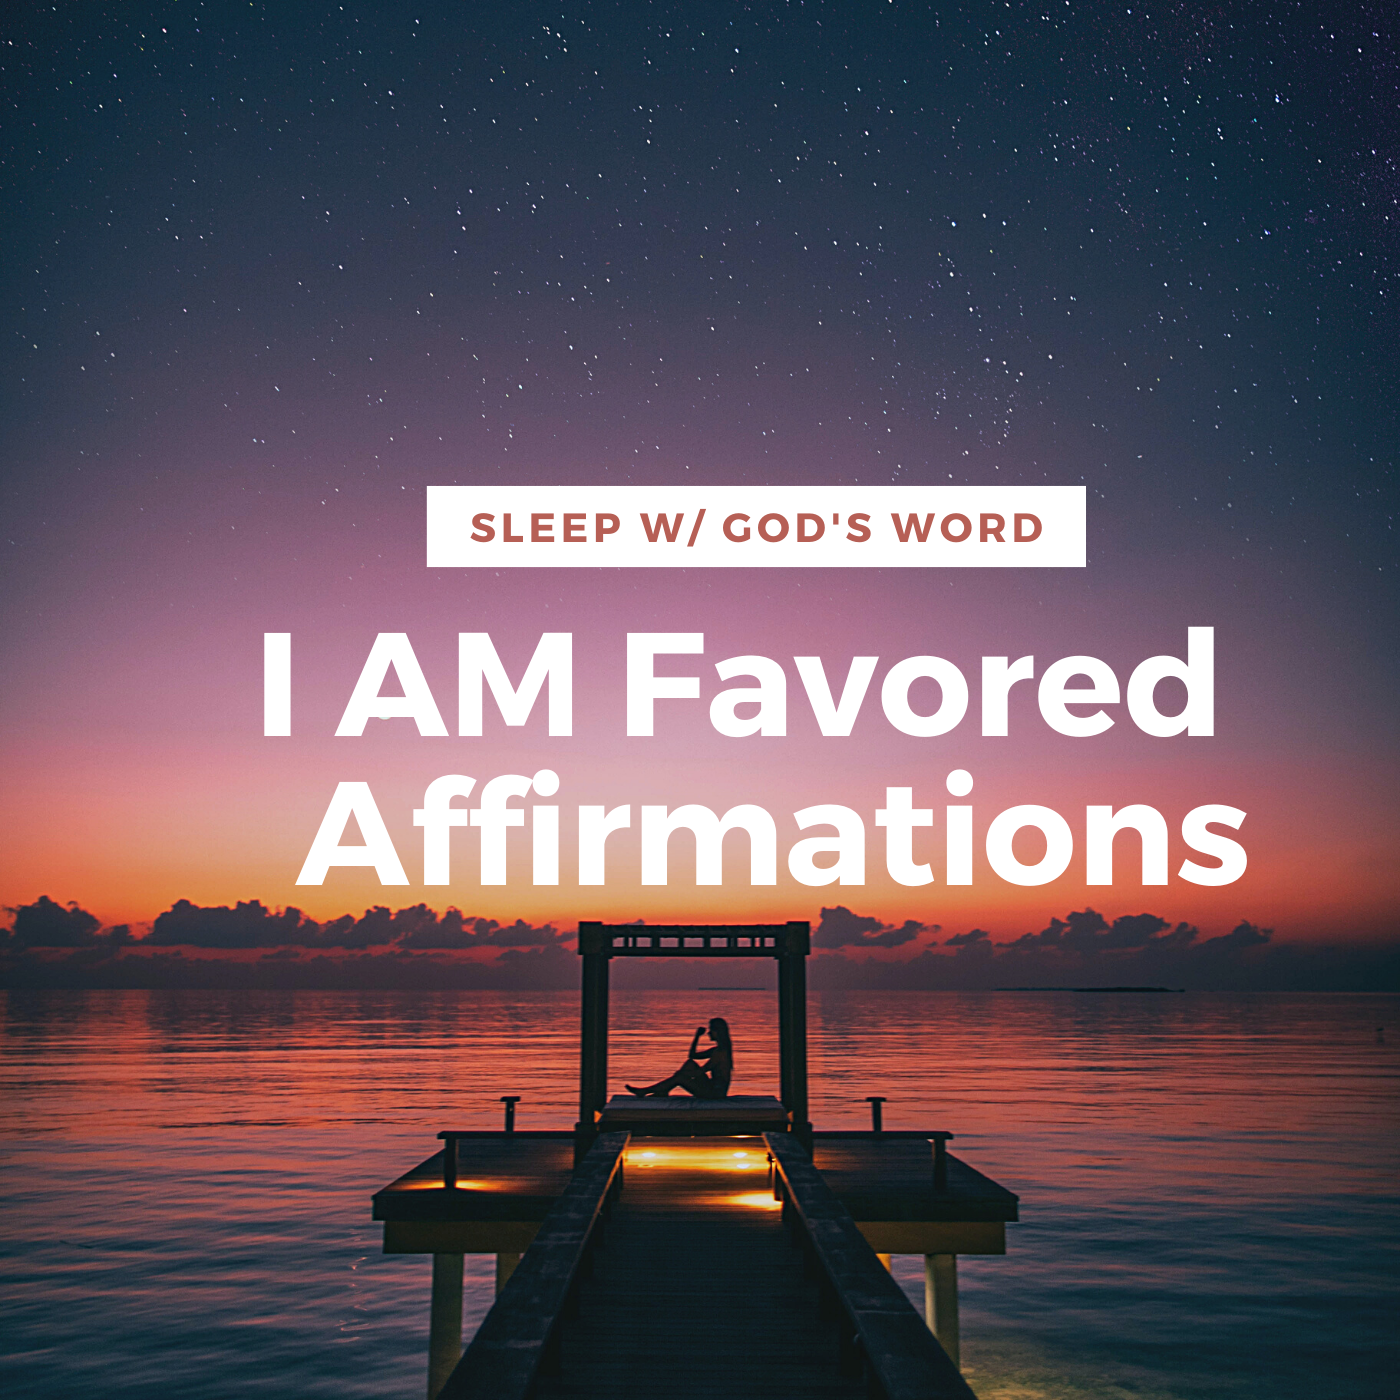 I AM Highly Favored Affirmations - Renew Your Mind While You Sleep